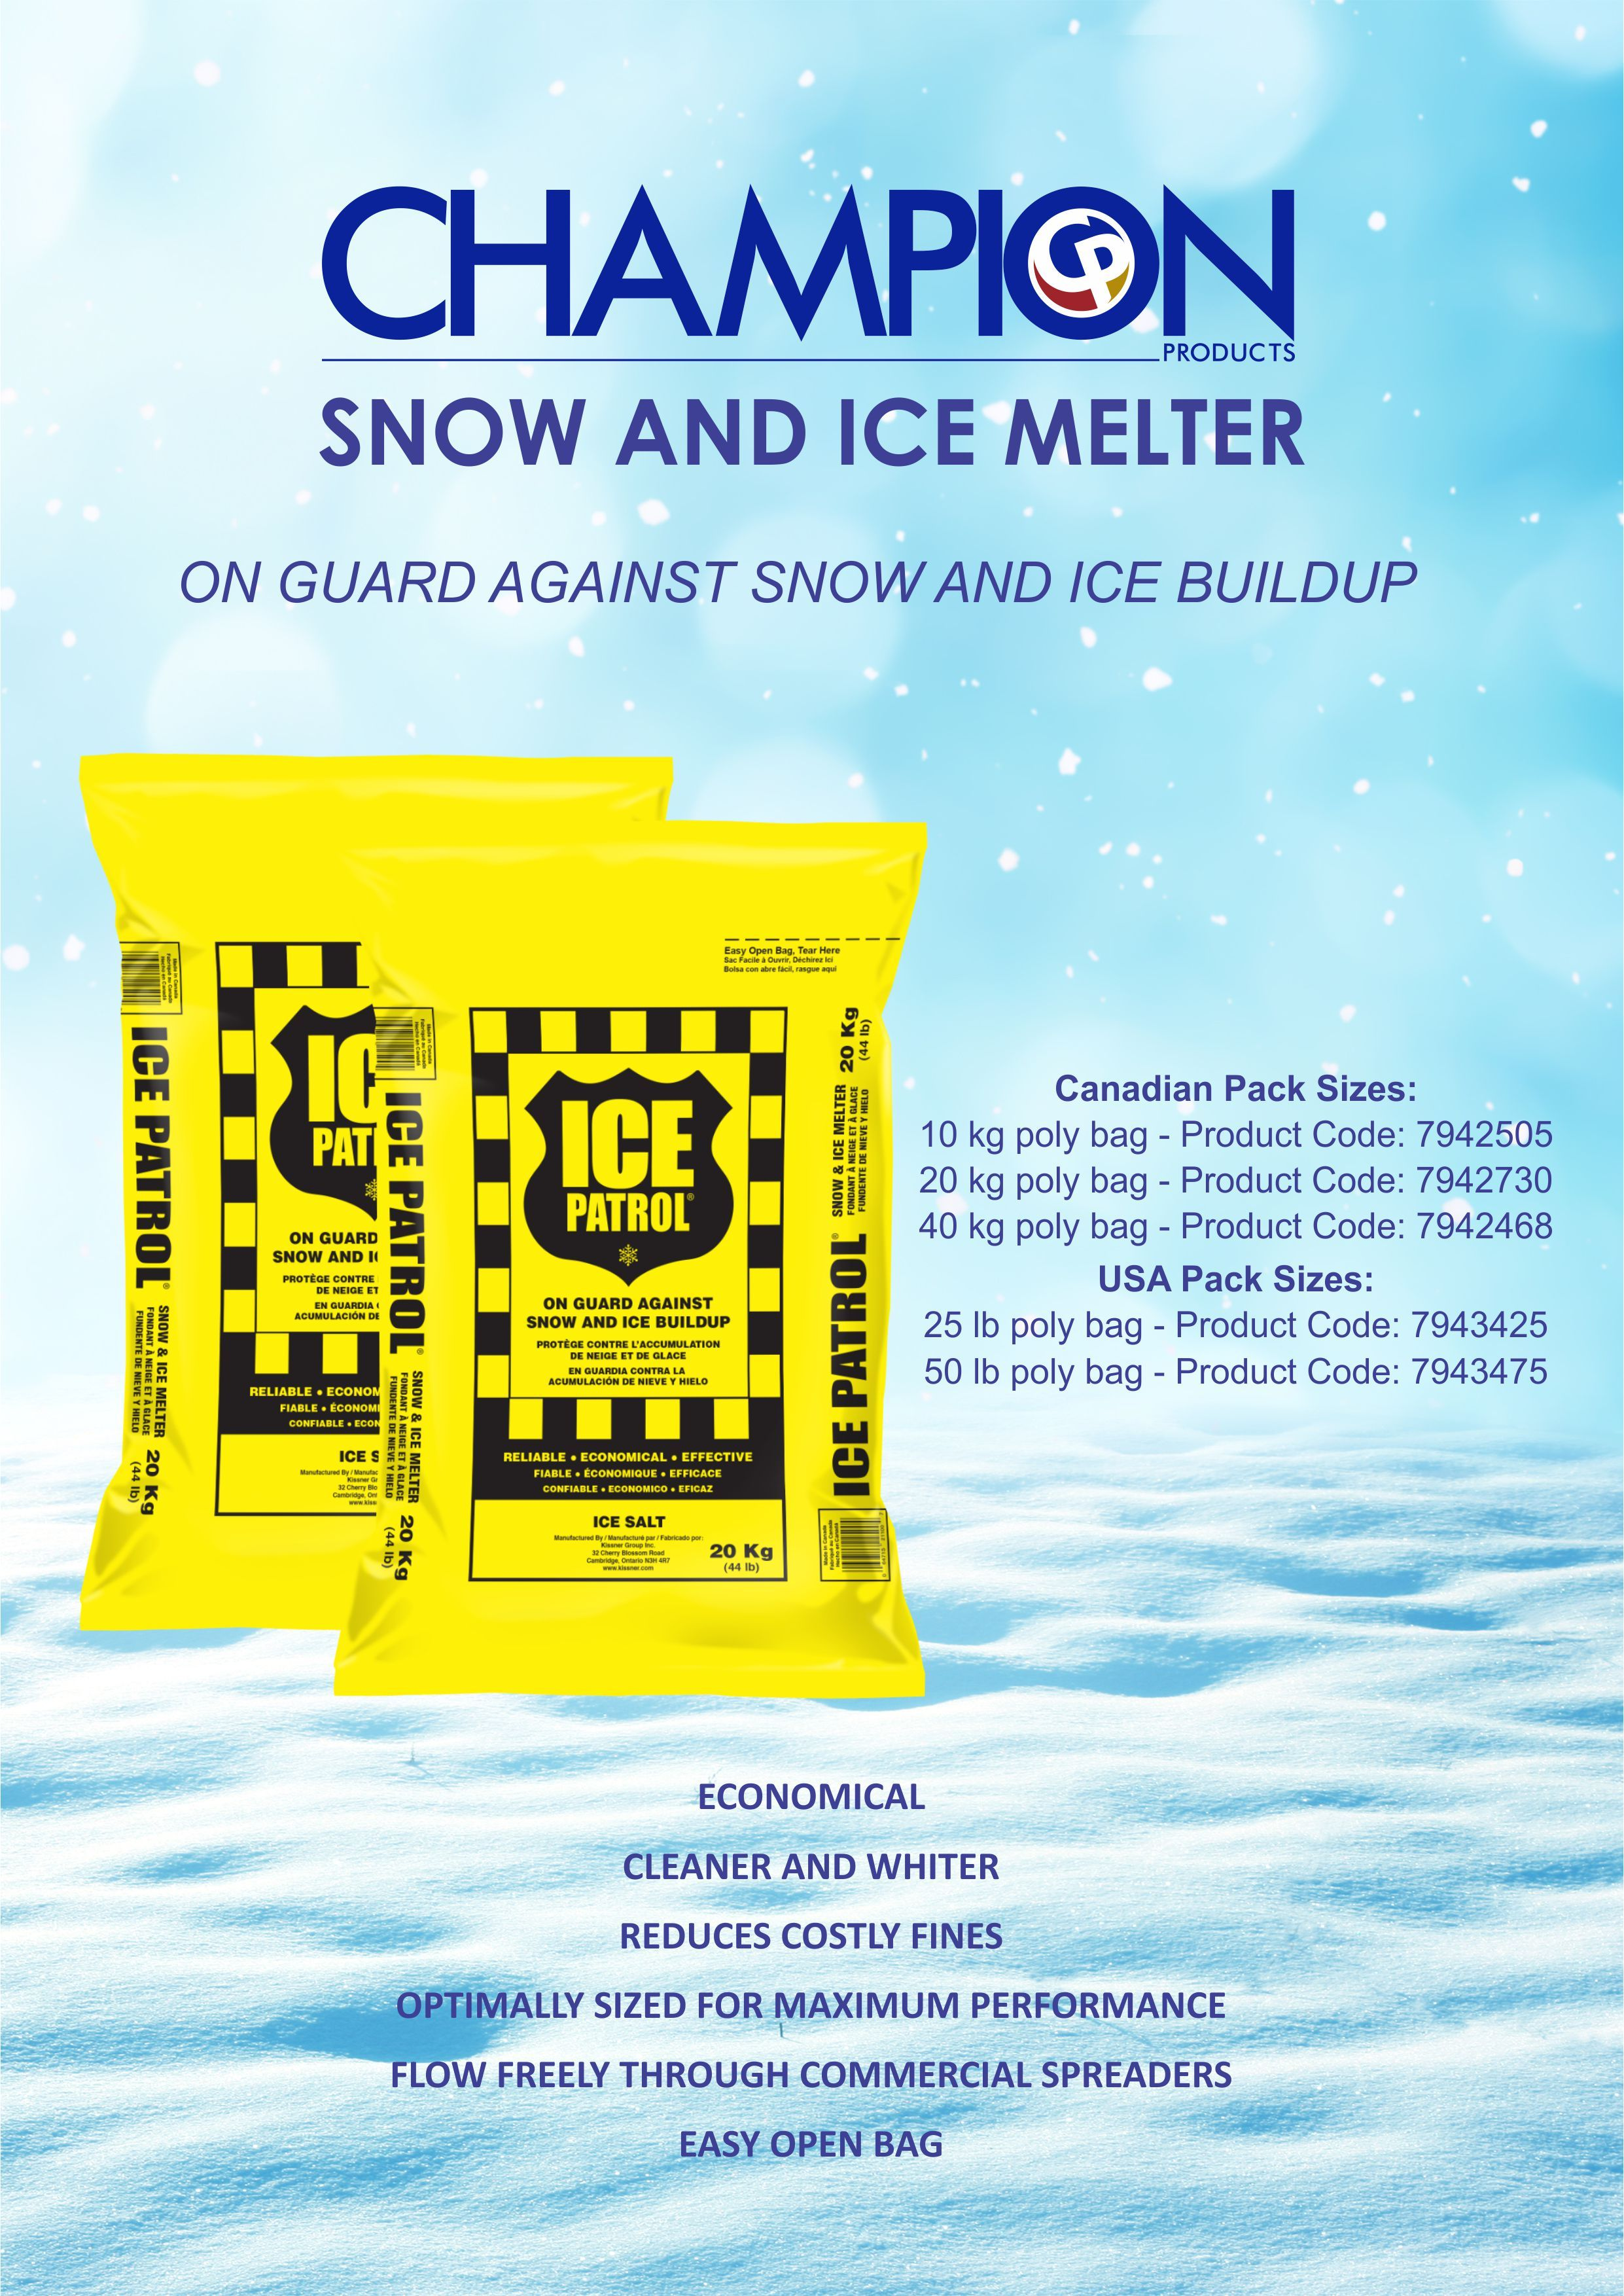 Pin By Champion Products On Winter Products Pinterest